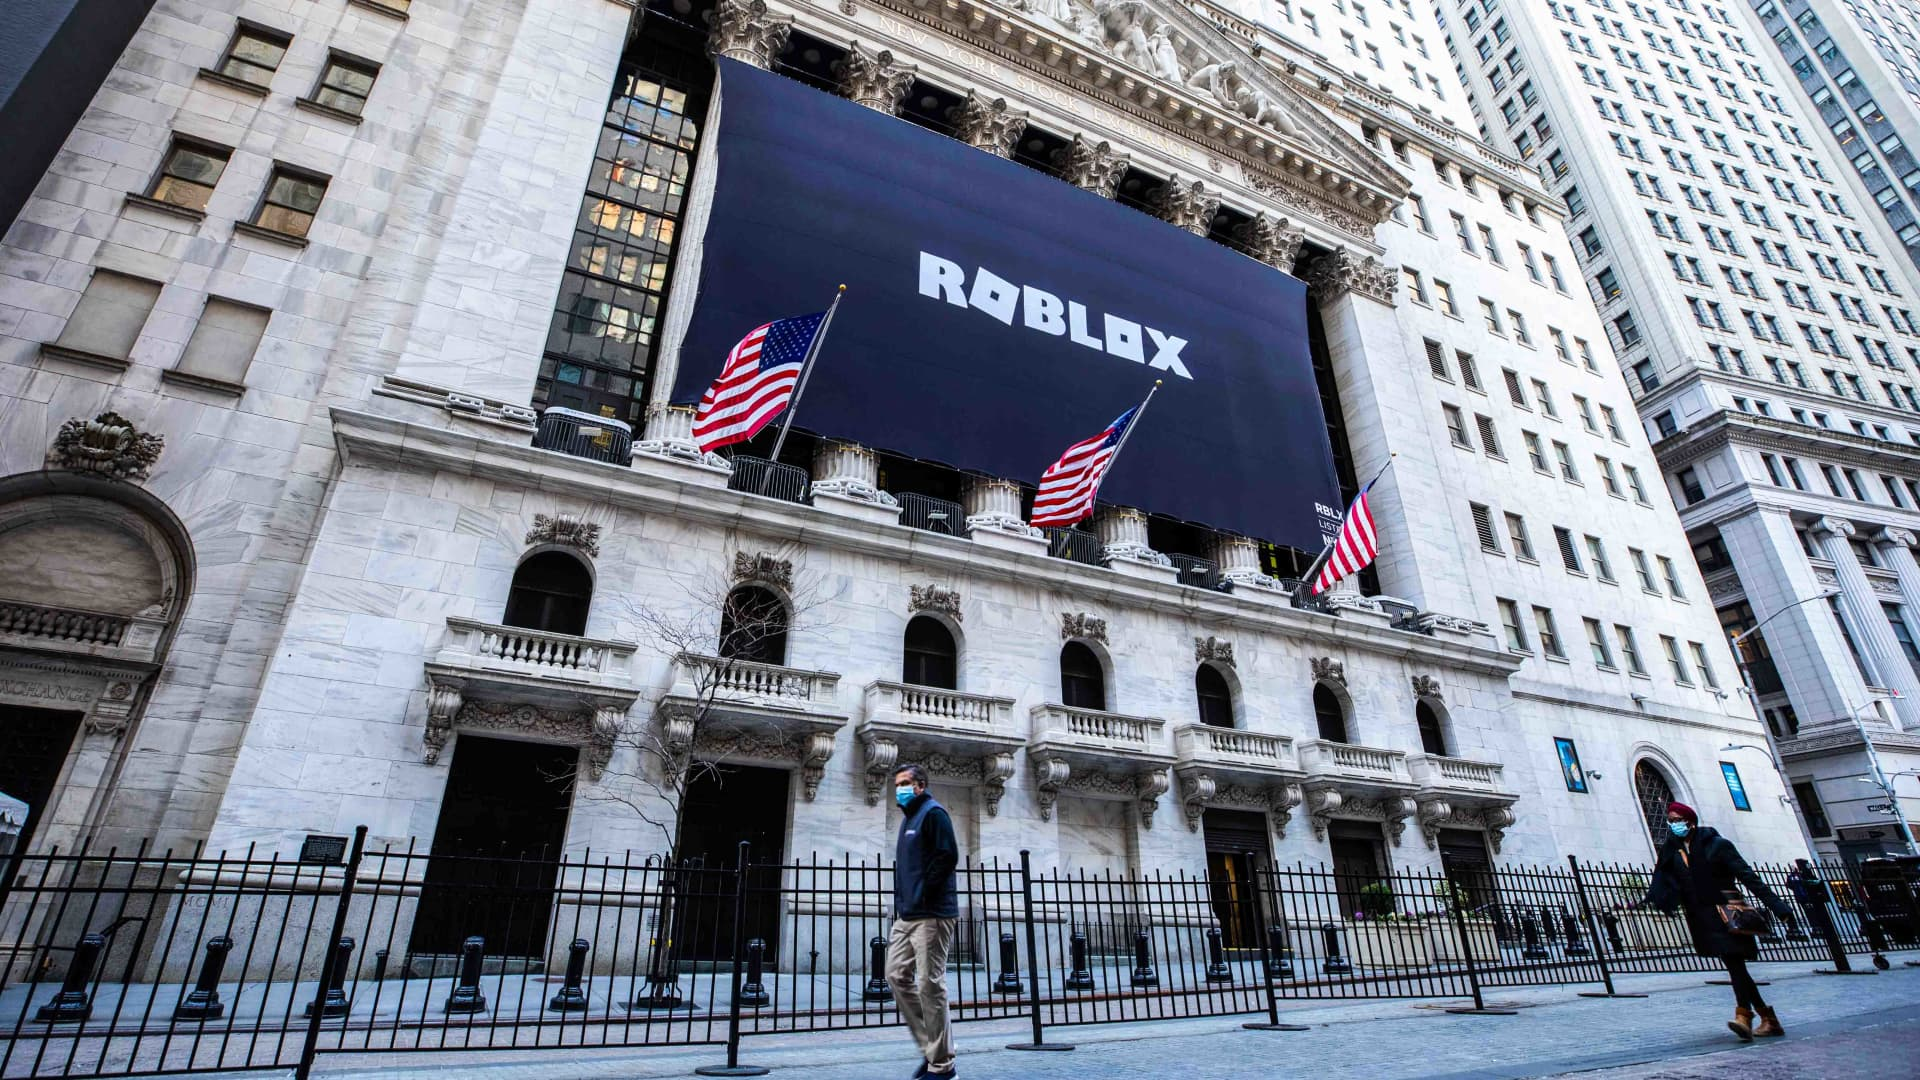 The New York Stock Exchange welcomes executives and guests of Roblox (NYSE: RBLX), today, Wednesday, March 10, 2021, in celebration of its Direct Listing.